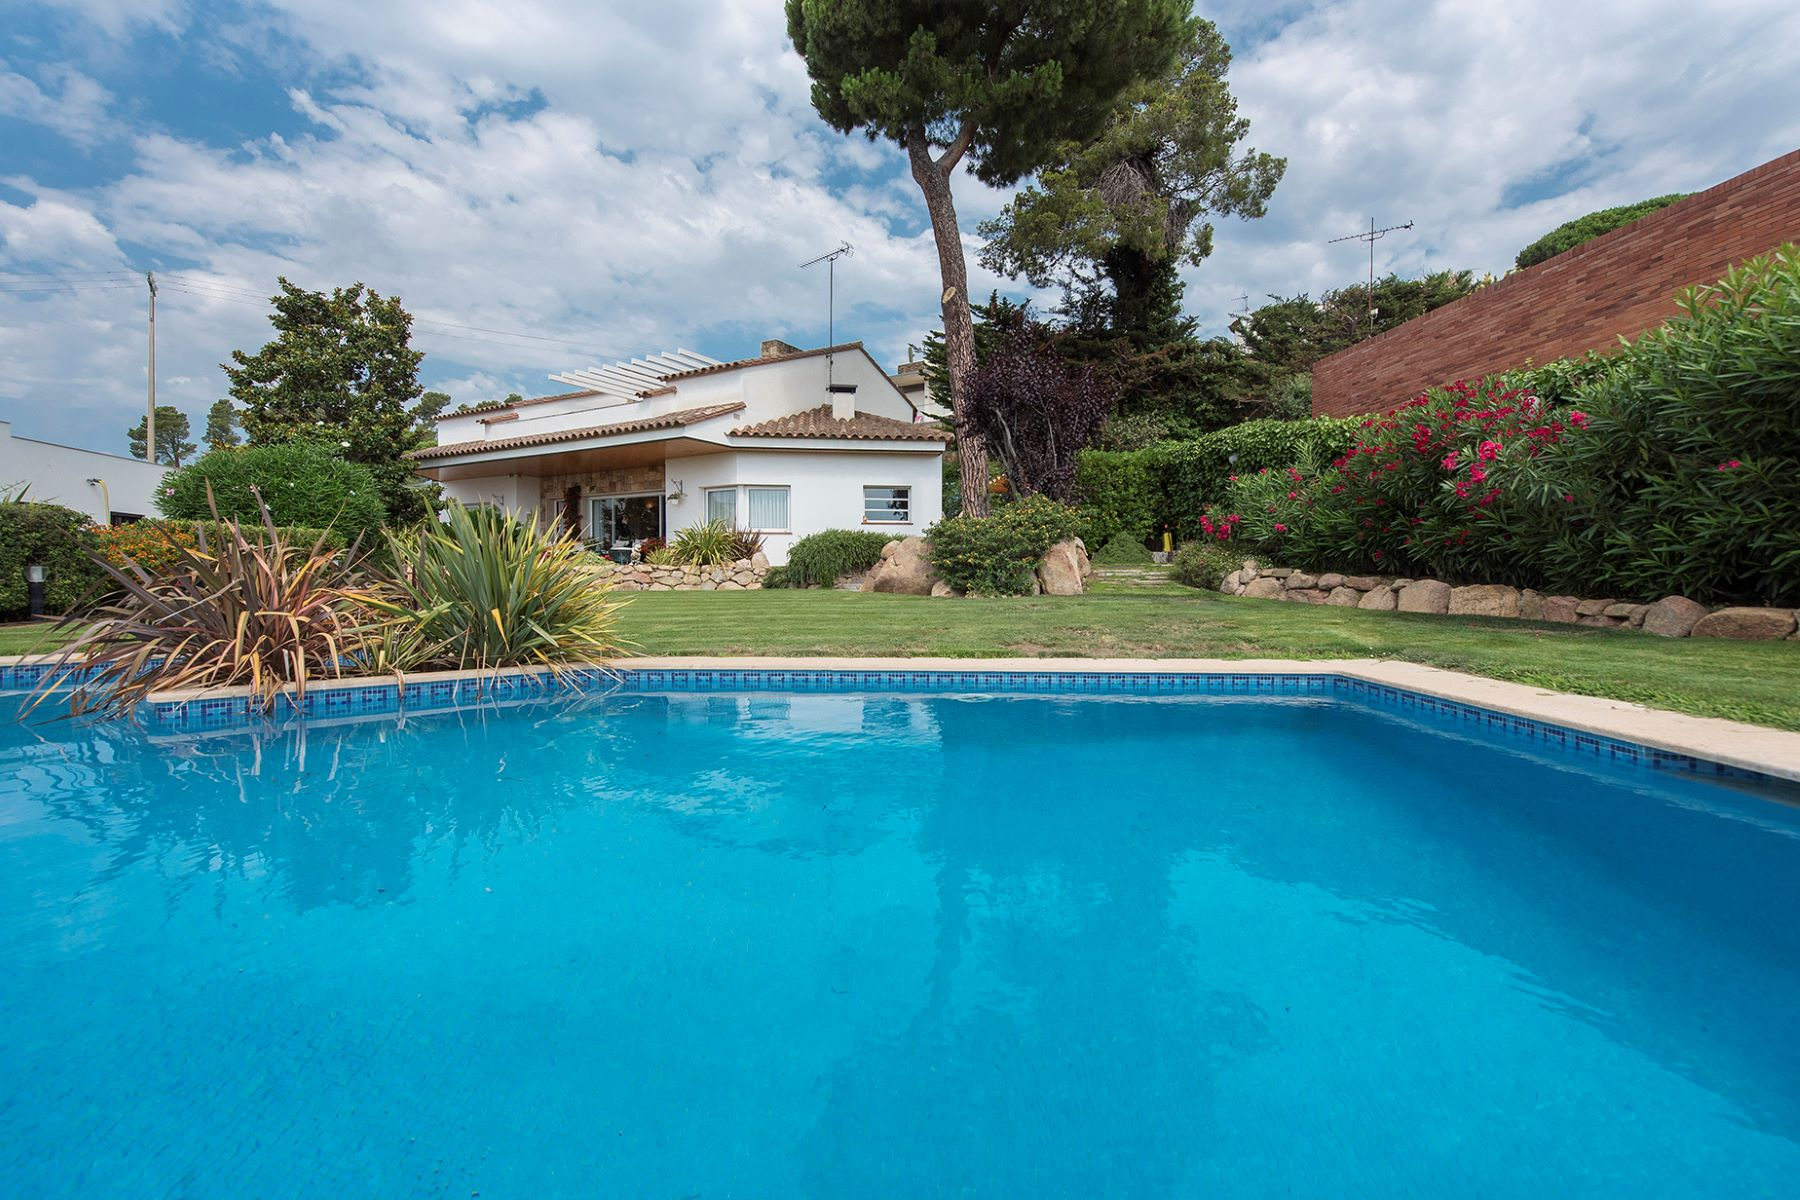 Single Family Homes for Sale at Villa with sea view in Mas Vila Other Spain, Other Areas In Spain 17252 Spain